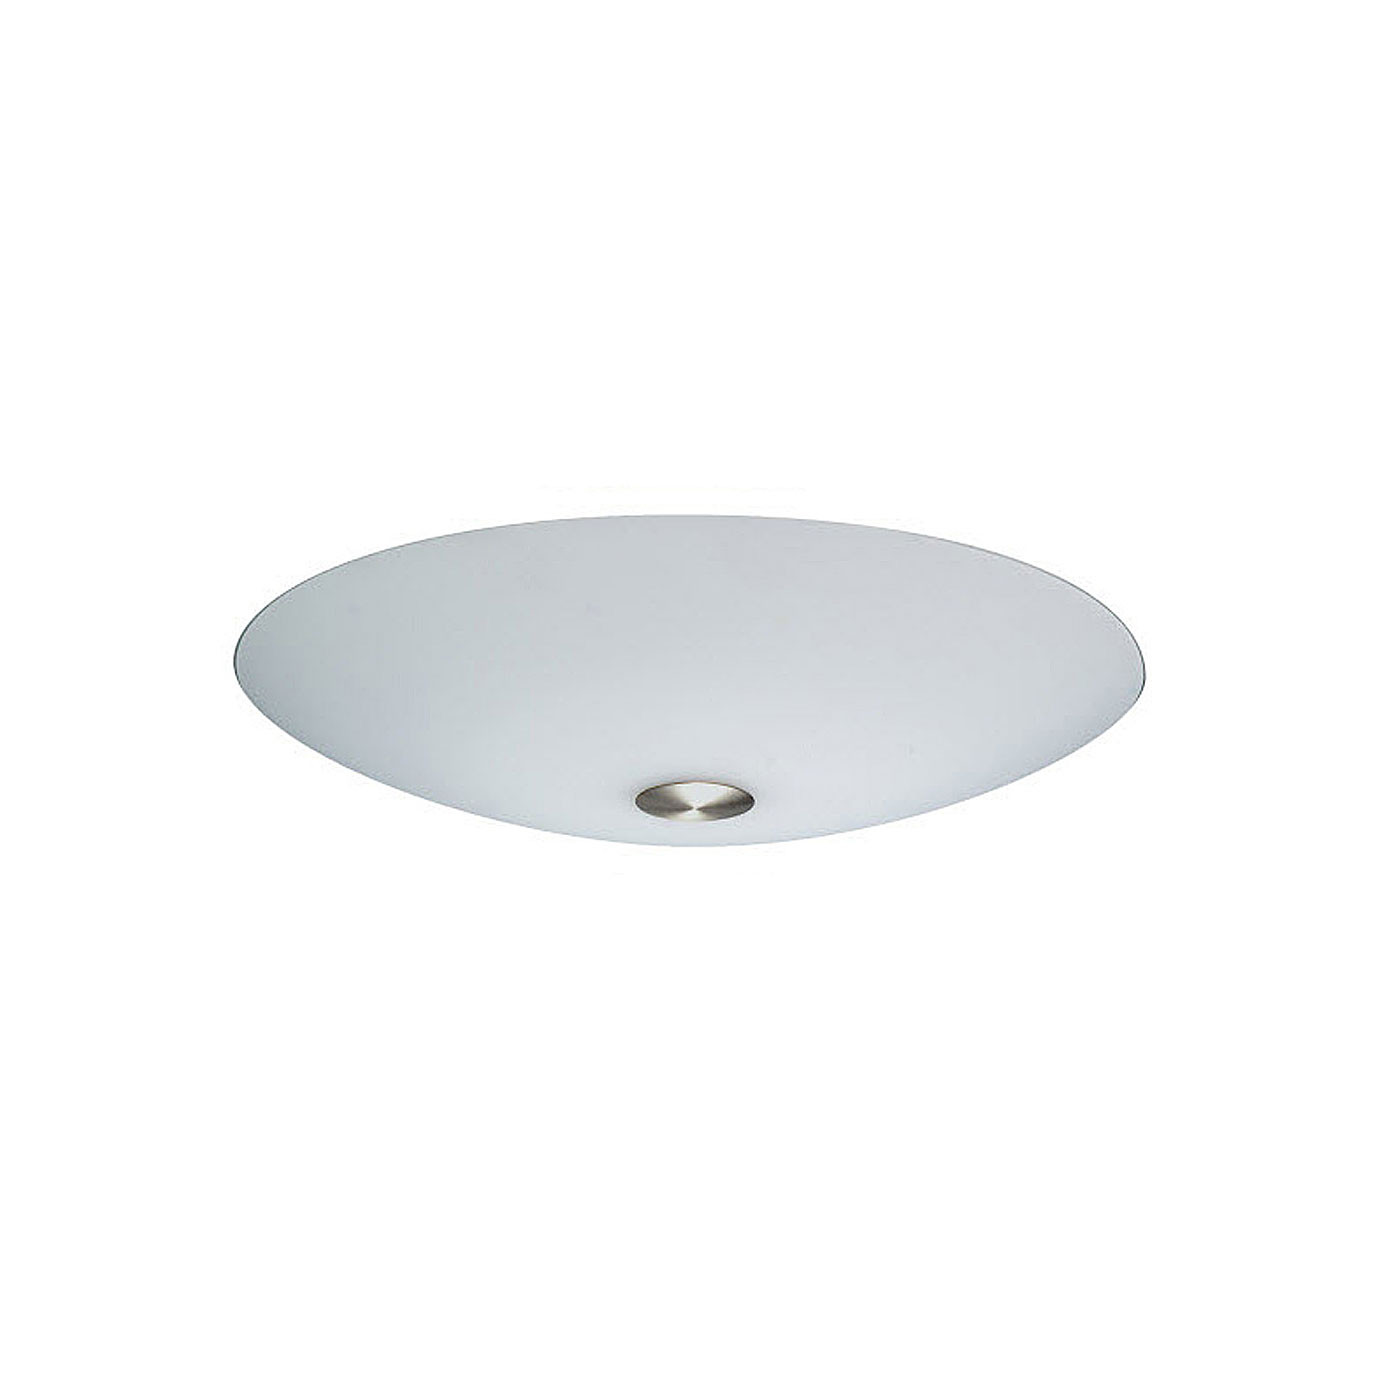 Casablanca Focus Ceiling Light